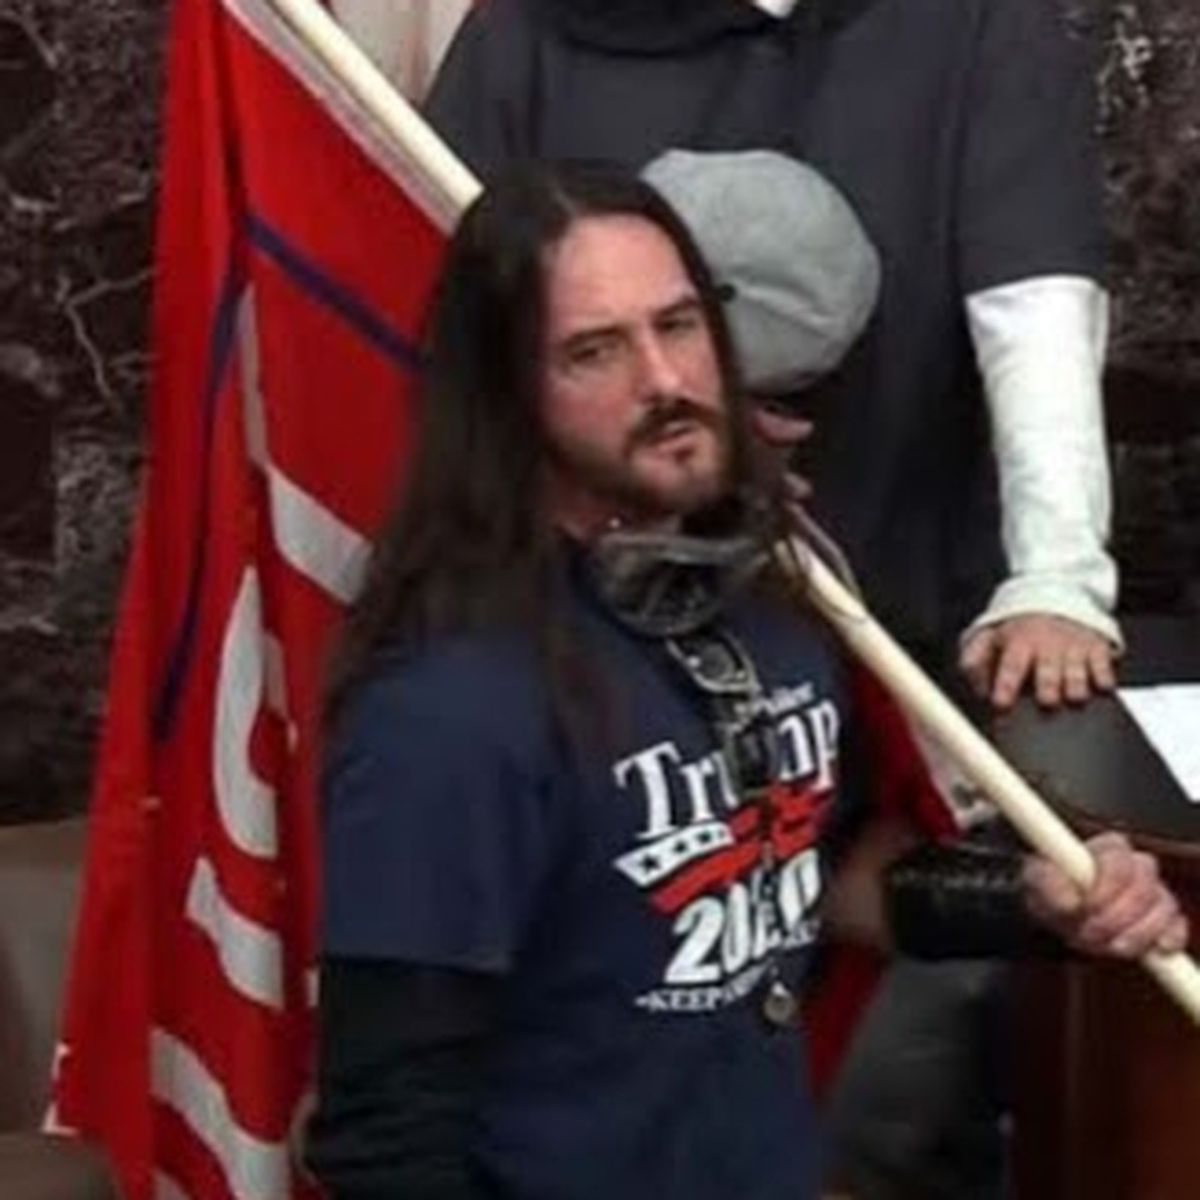 Florida Man Gets Eight Months in Prison in First Sentencing for January 6 Capitol Riot